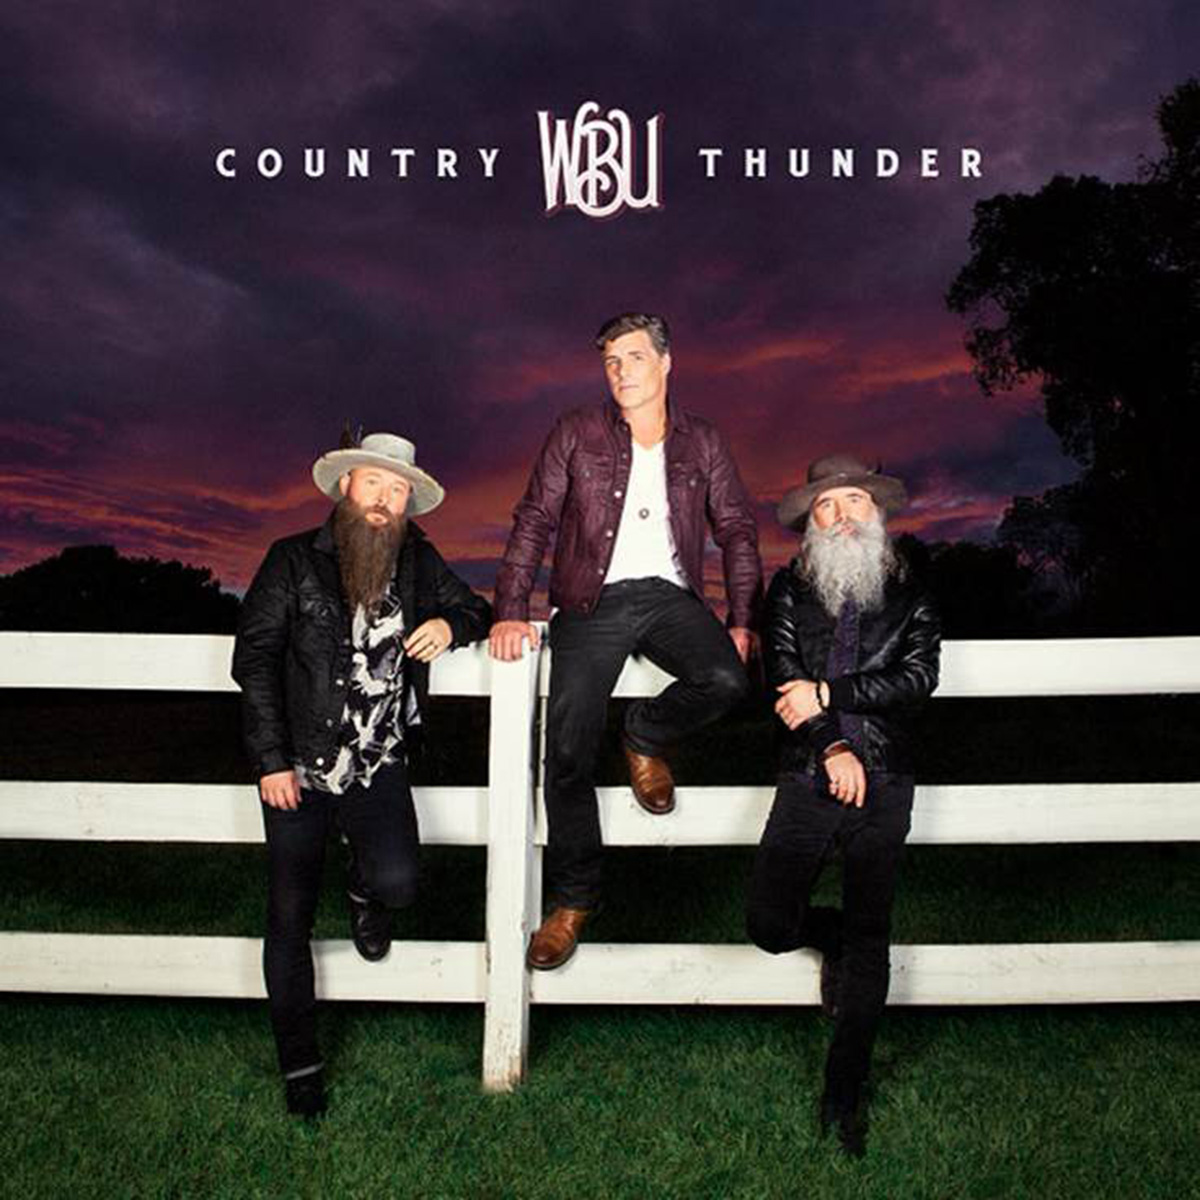 """Canada's Leading Country Band The Washboard Union Debuts New Single """"Country Thunder"""""""